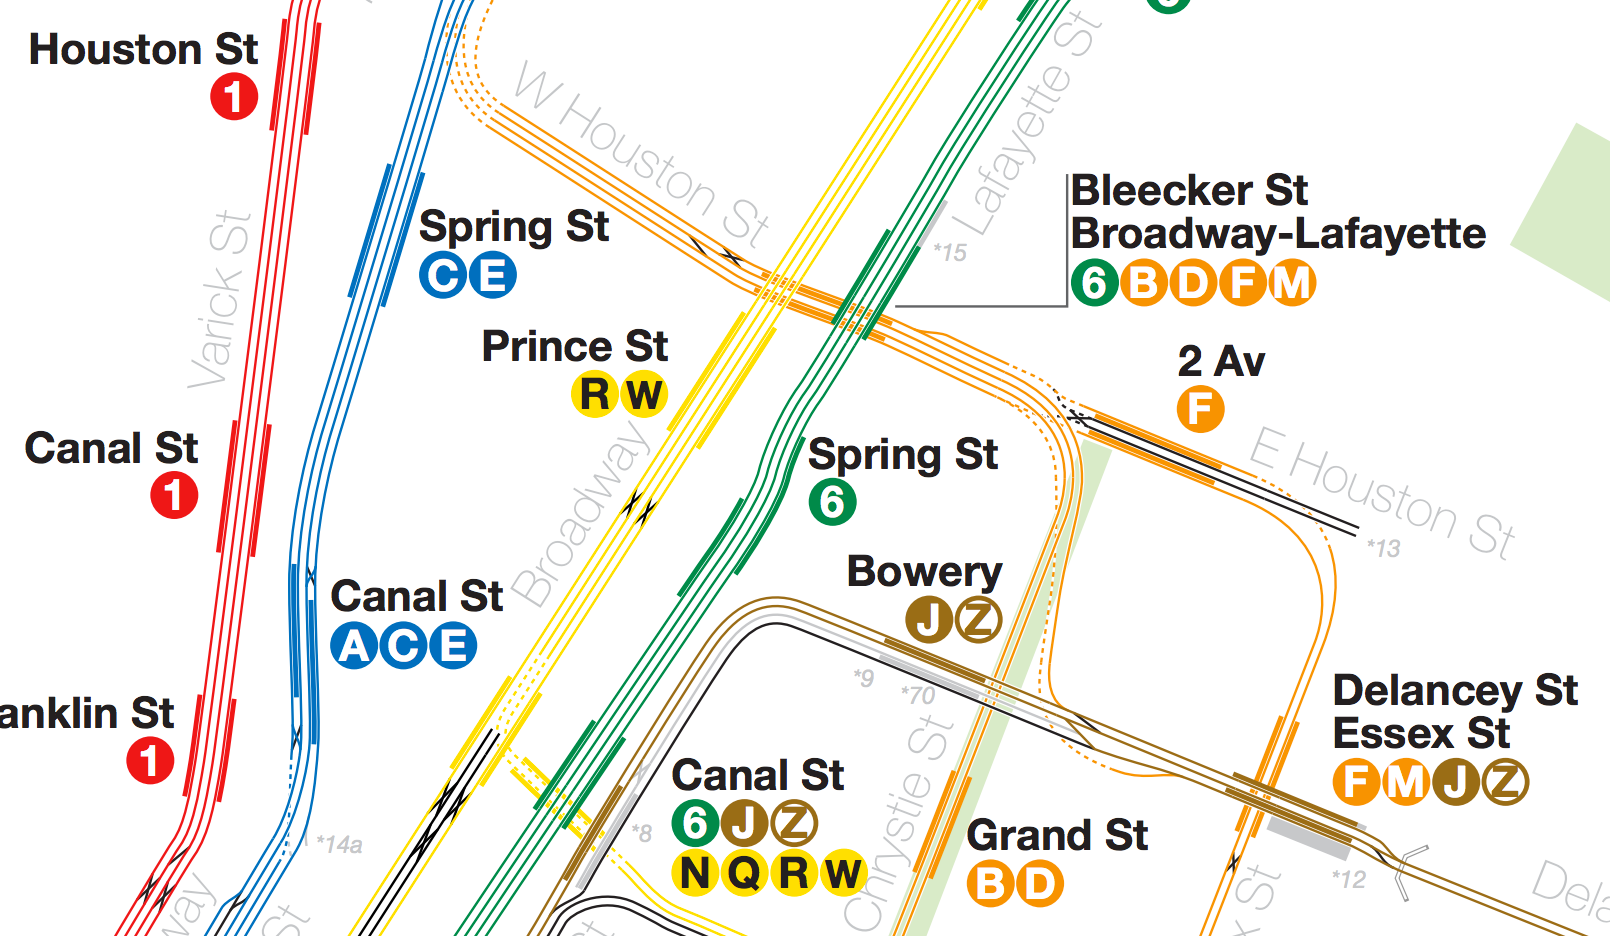 Nyc Subway Map Vs Actual.Maps Archives Human Transit